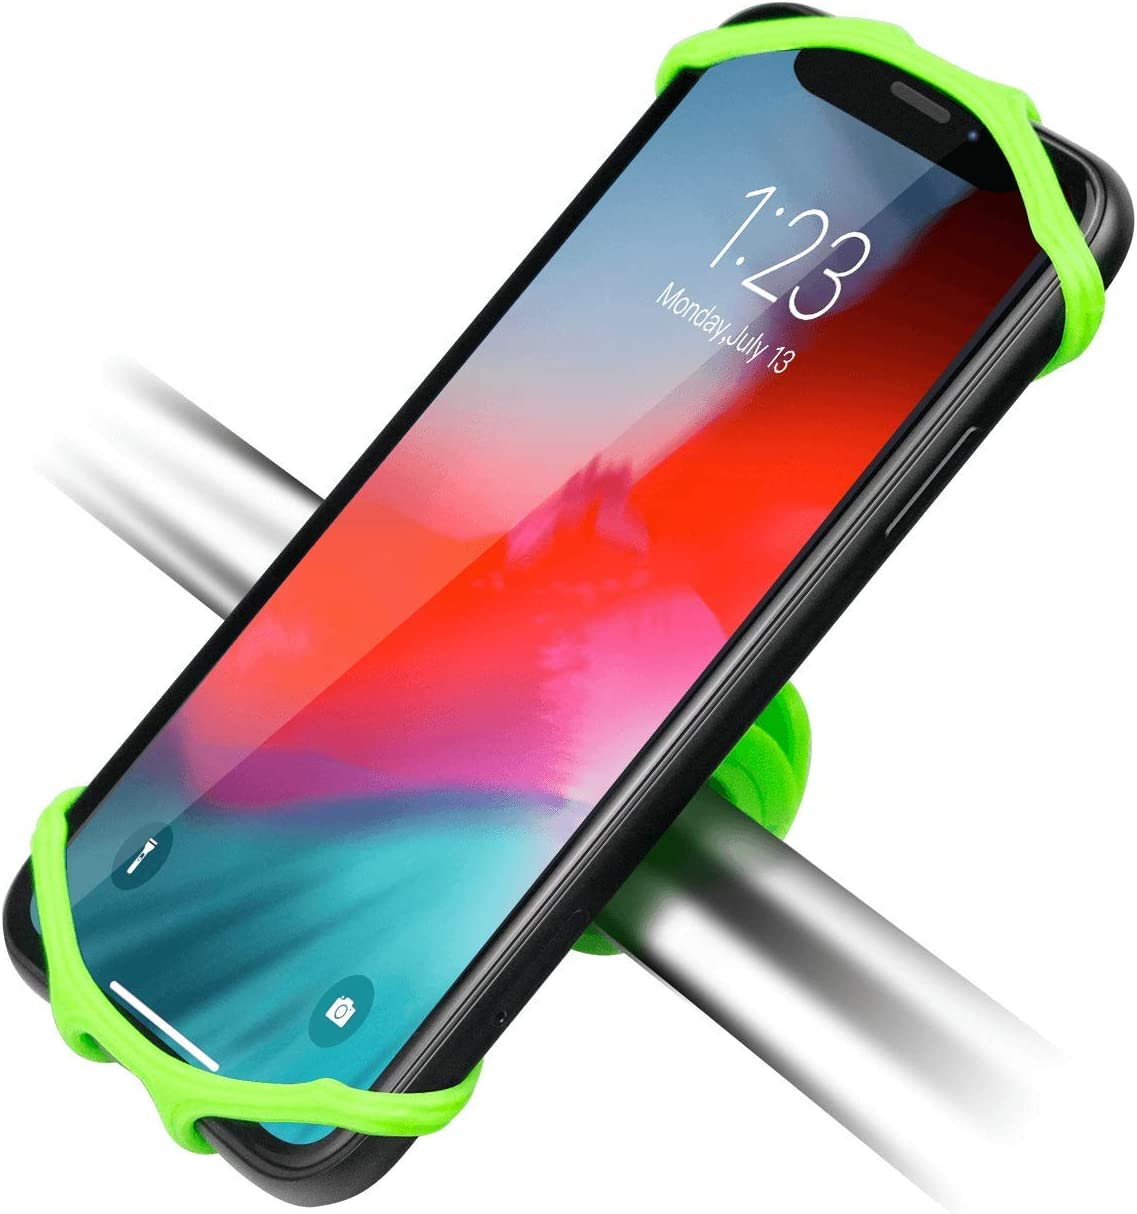 Newppon Bicycle Phone Mount Holder : 360° Rotation Stable Elastic Silicone Motorcycle Smartphone Holder Compatible iPhone 11 Pro Mini Max SE X Xs Xr Samsung Galaxy S20 S10 S10e GPS Unit ( Green )